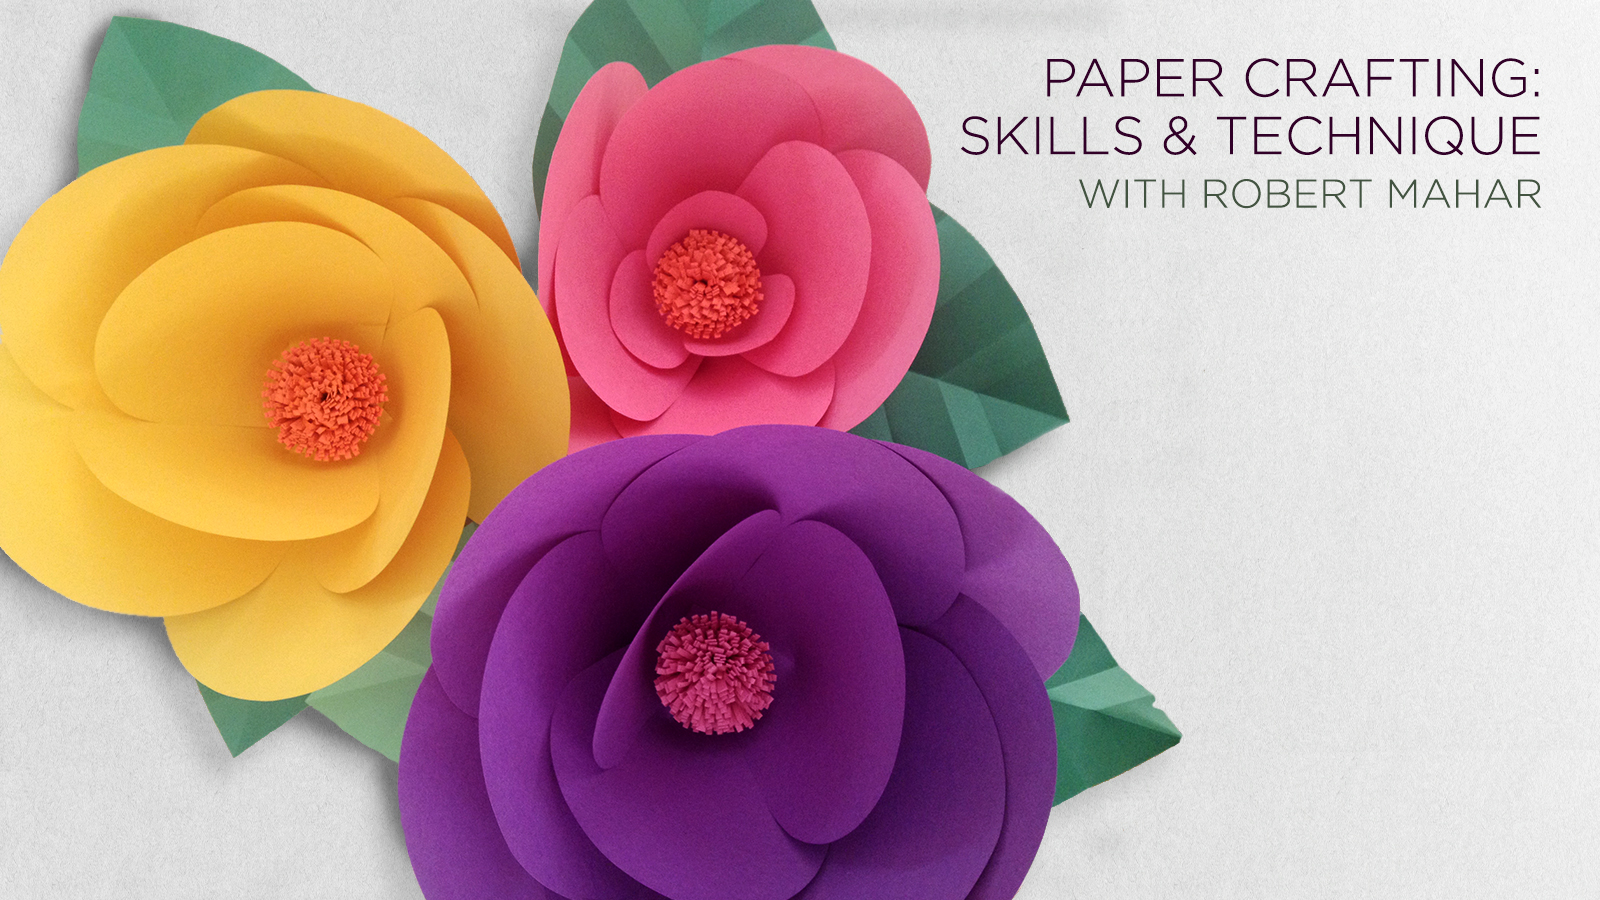 Learn how to make impressive paper crafts with Robert Mahar and CreativeLive.